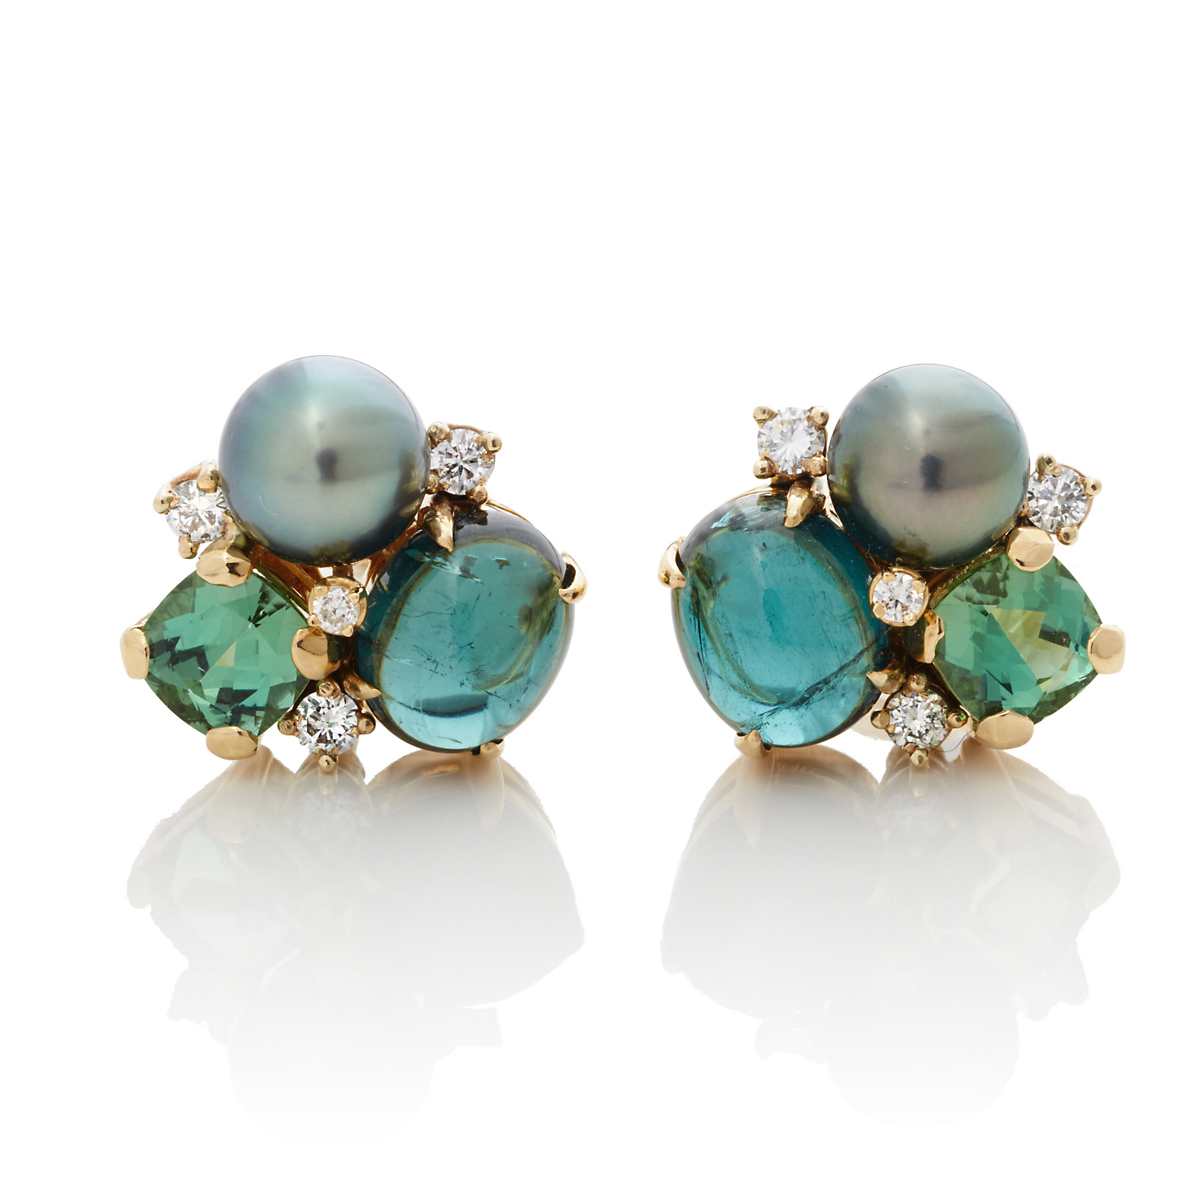 Gump's Tahitian Pearl & Tourmaline Earrings